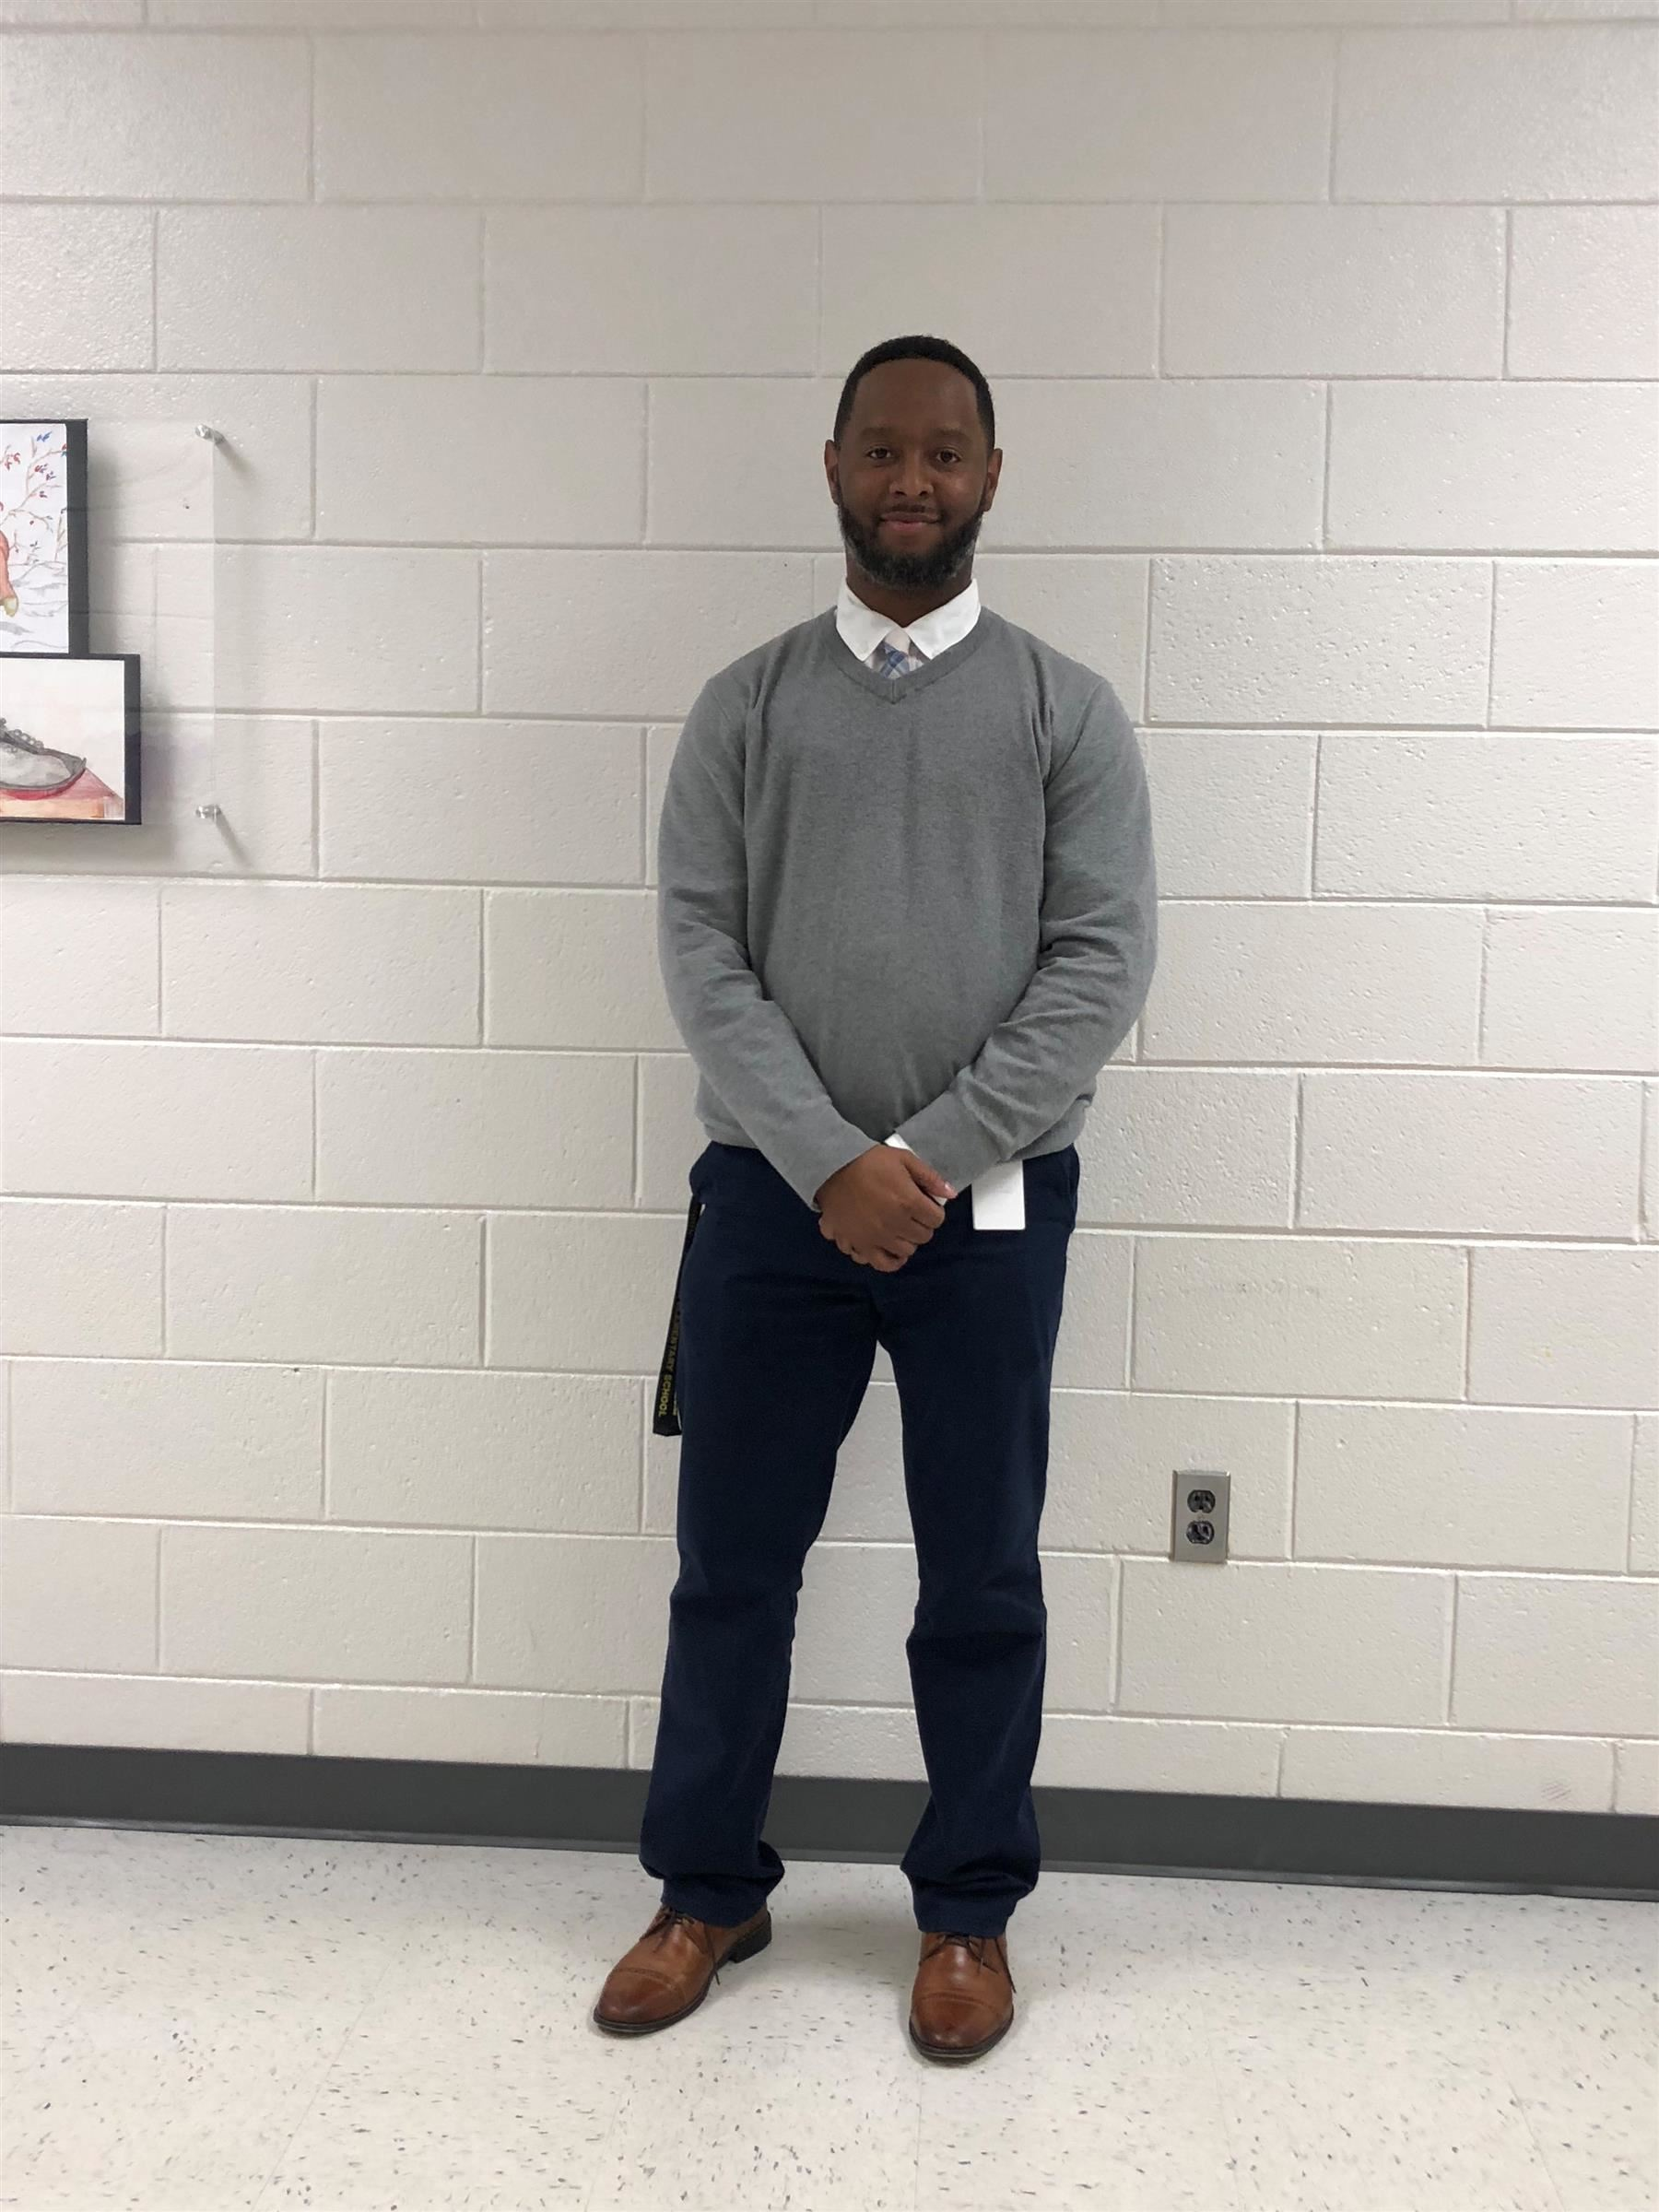 Roderick Boyles Named Assistant Principal of Franklinton Elementary School